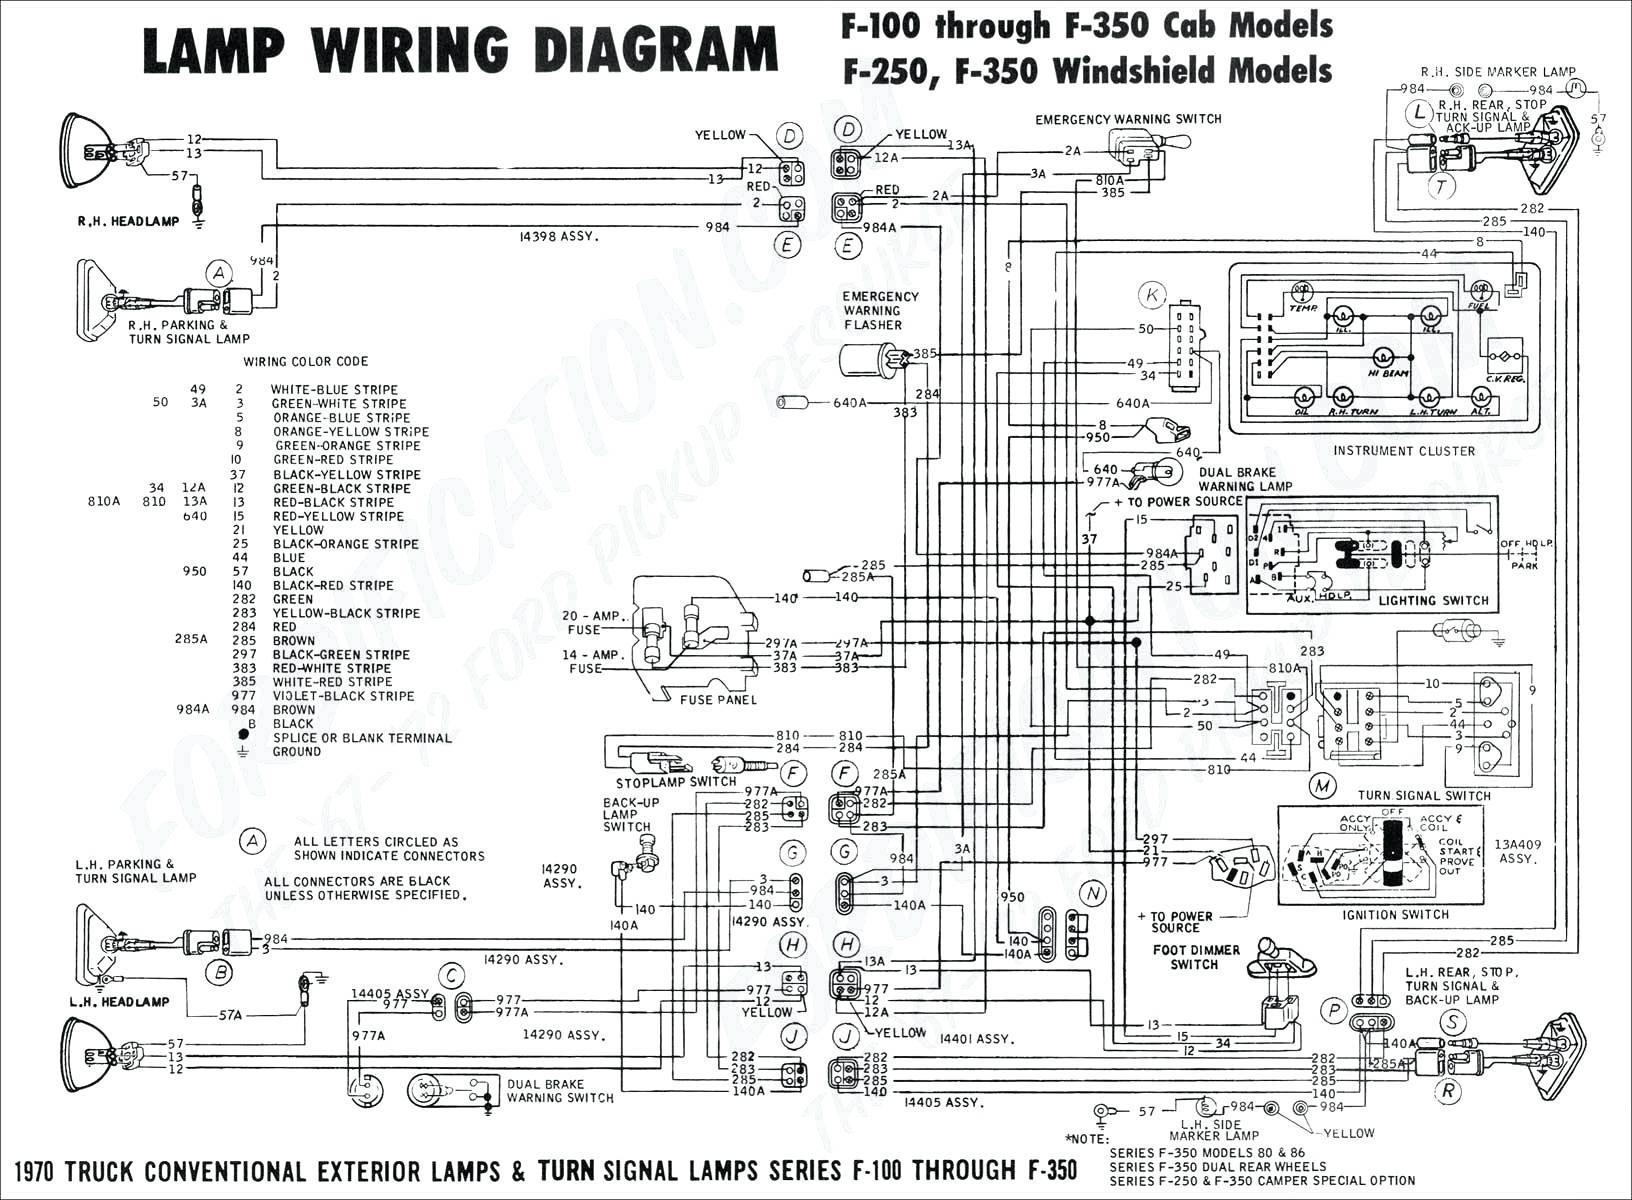 2004 chevy silverado stock radio wiring diagram 72 ford f250 2005 trailblazer